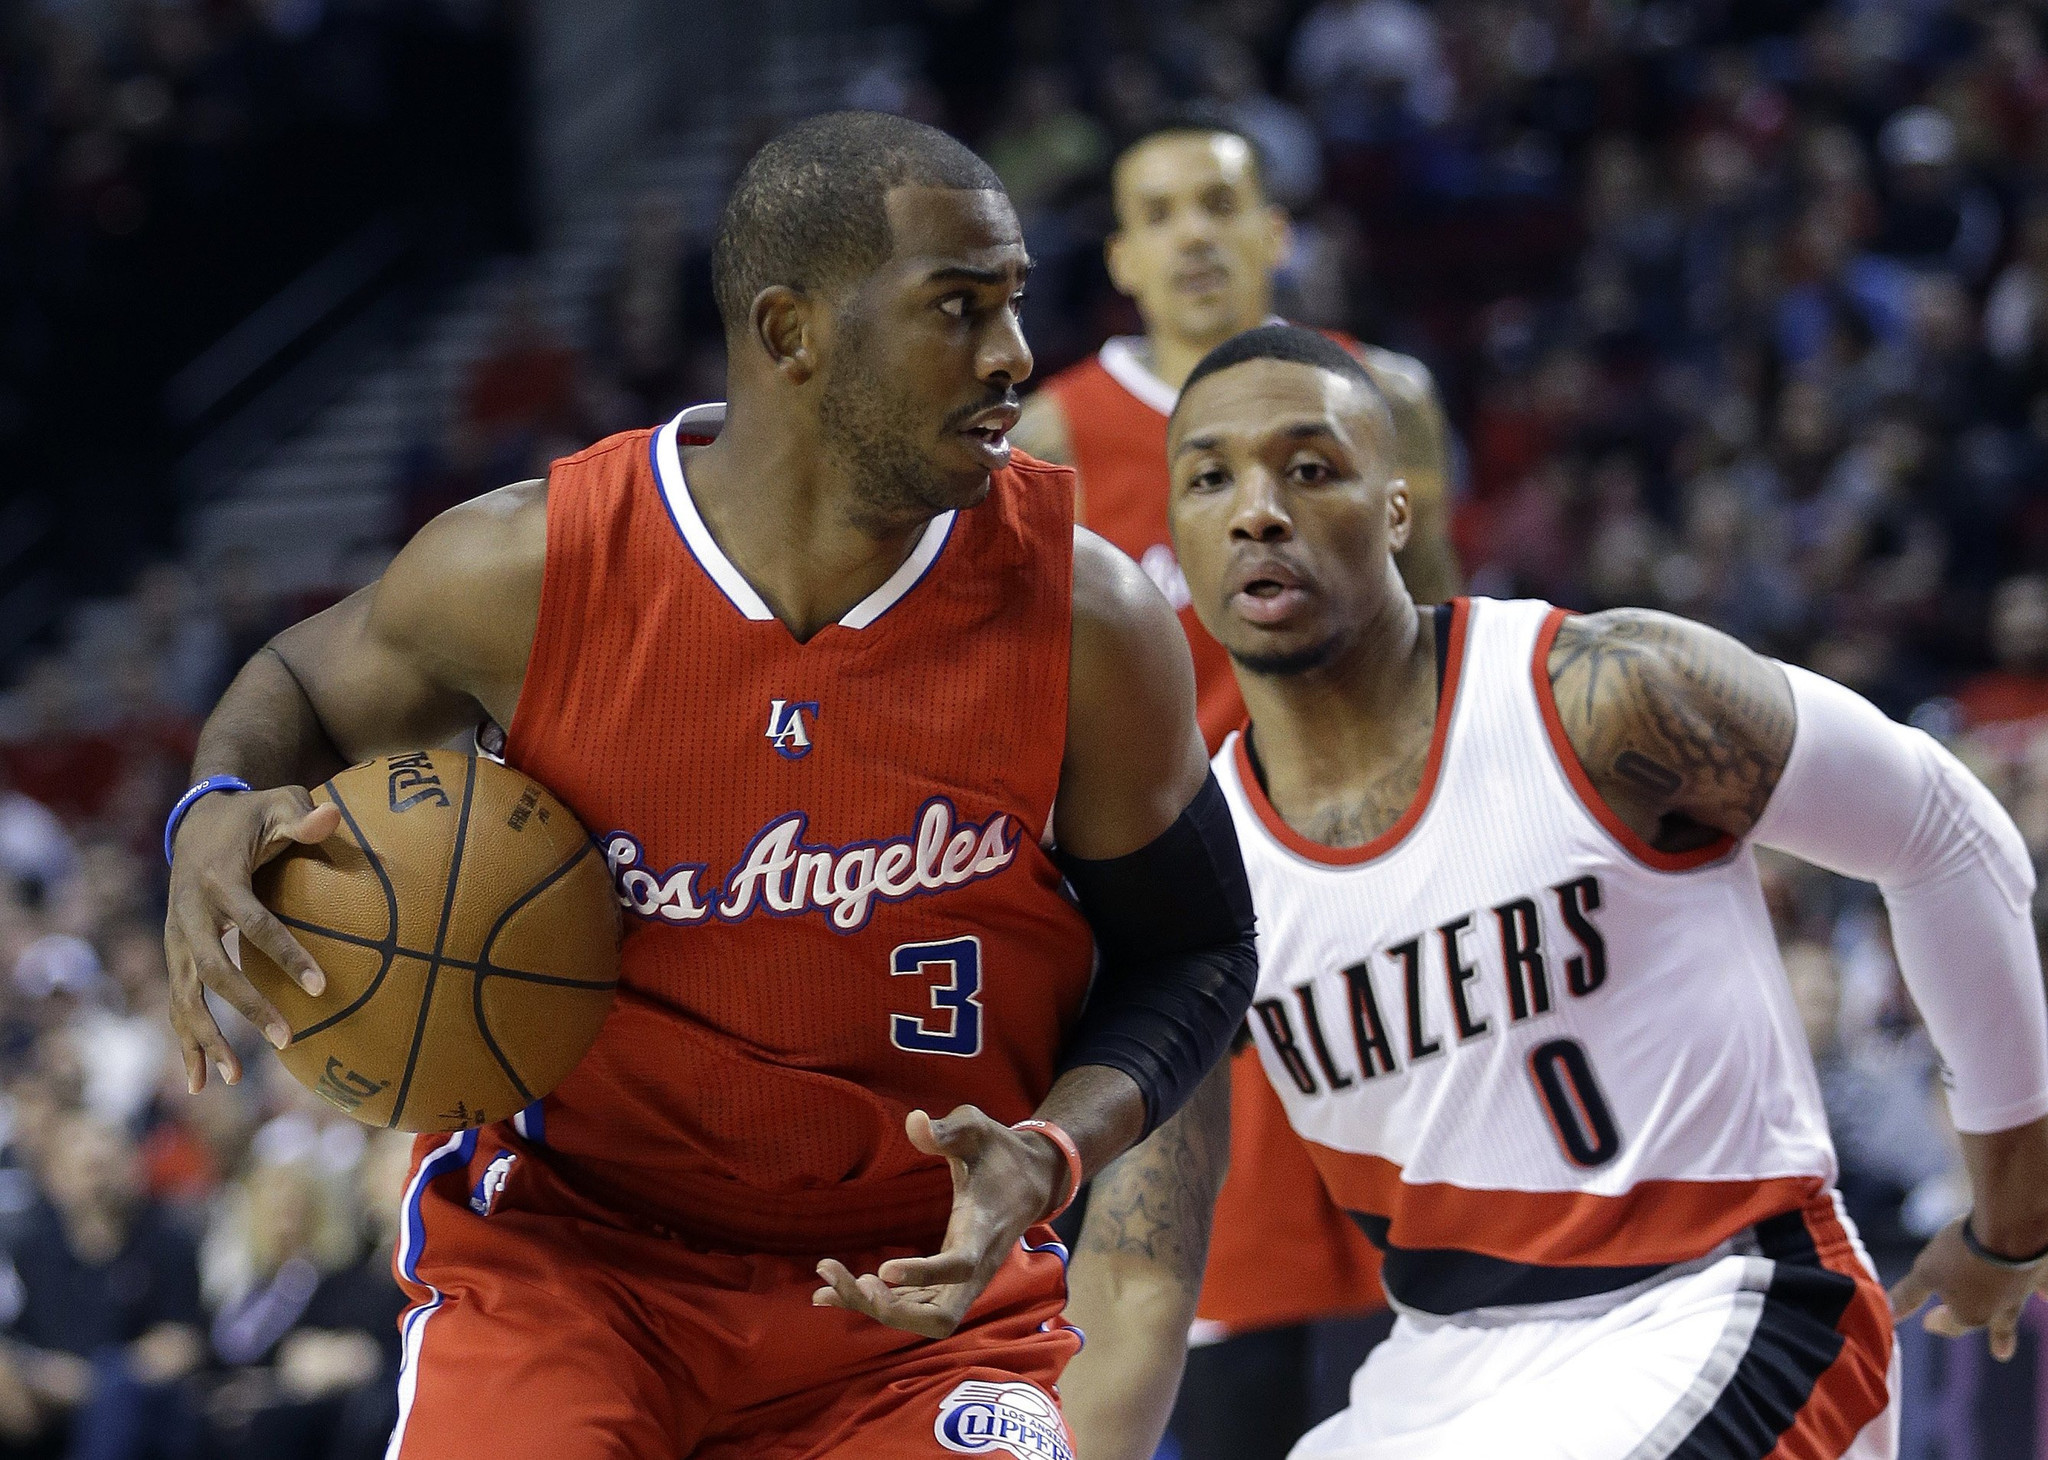 Shove story for Clippers in 126-122 win over Trail Blazers